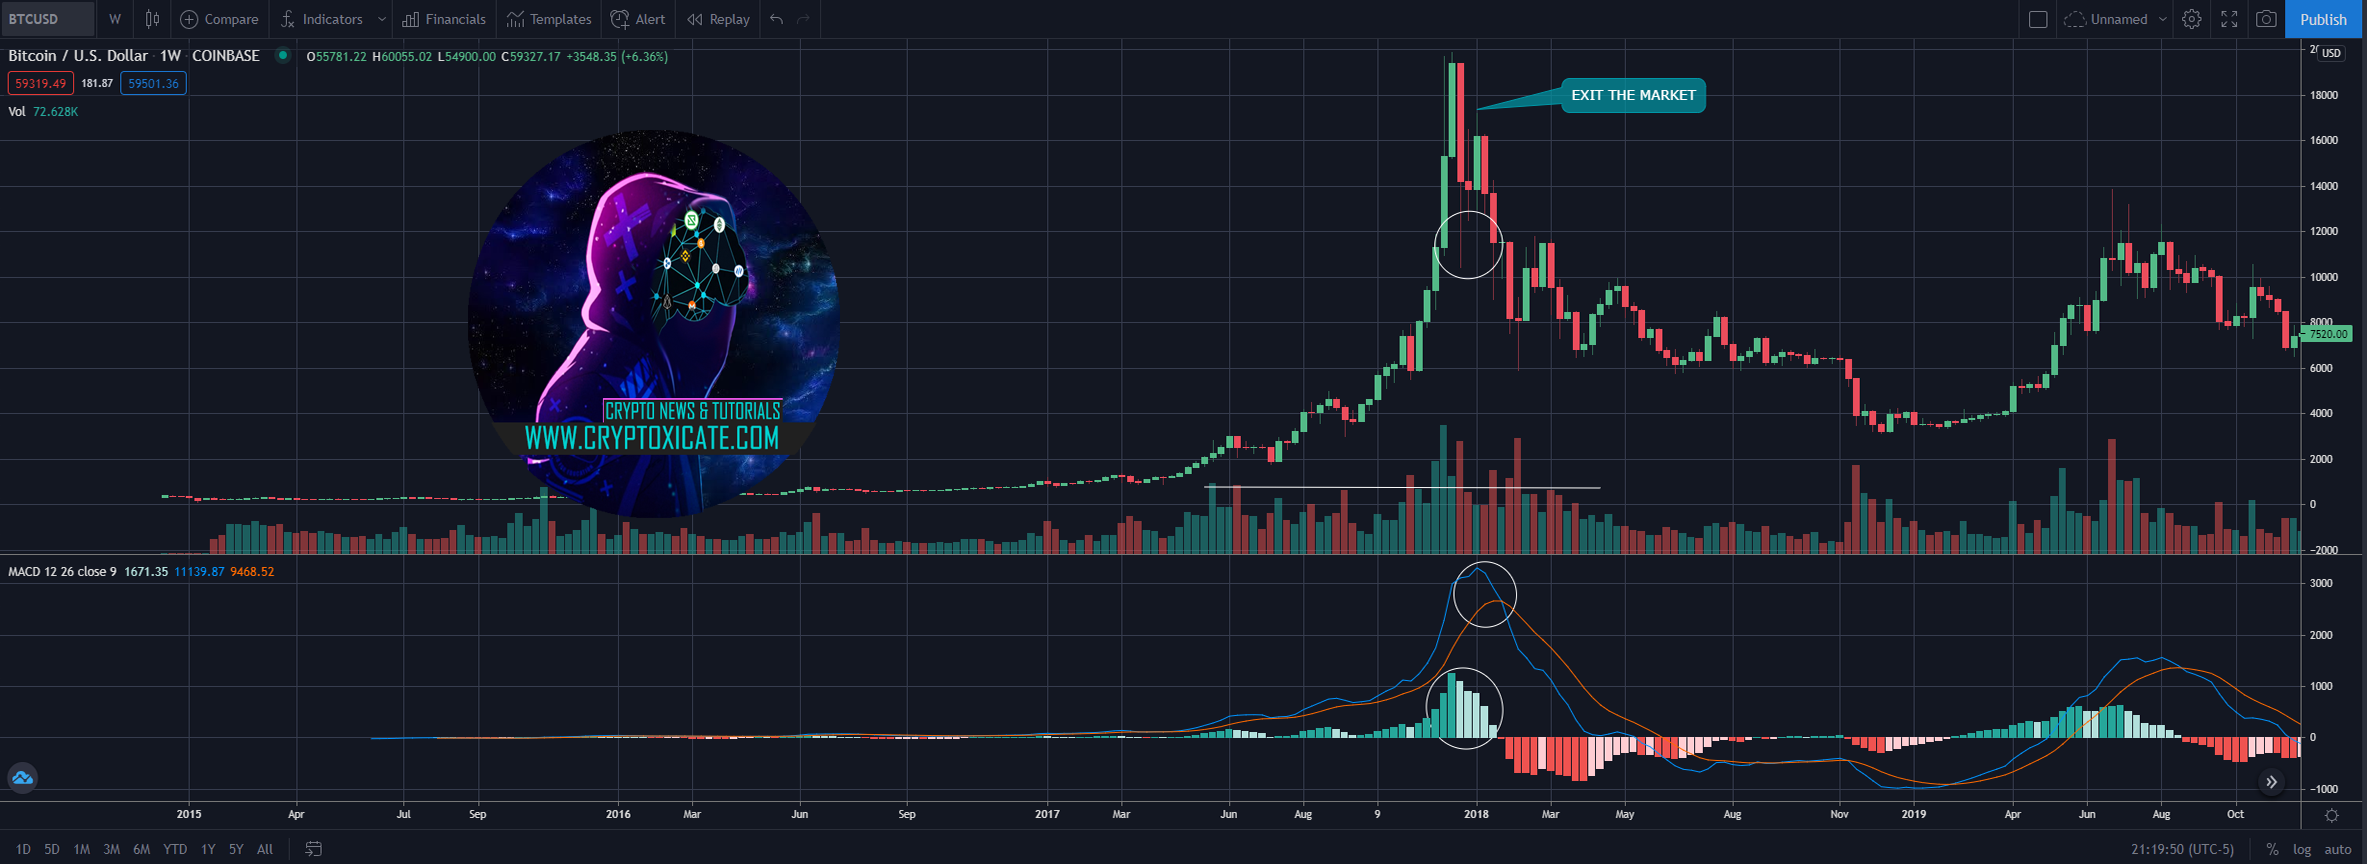 004_big_hive_price_action_looking_better_when_crypto_market_top_cryptoxicate_com.png